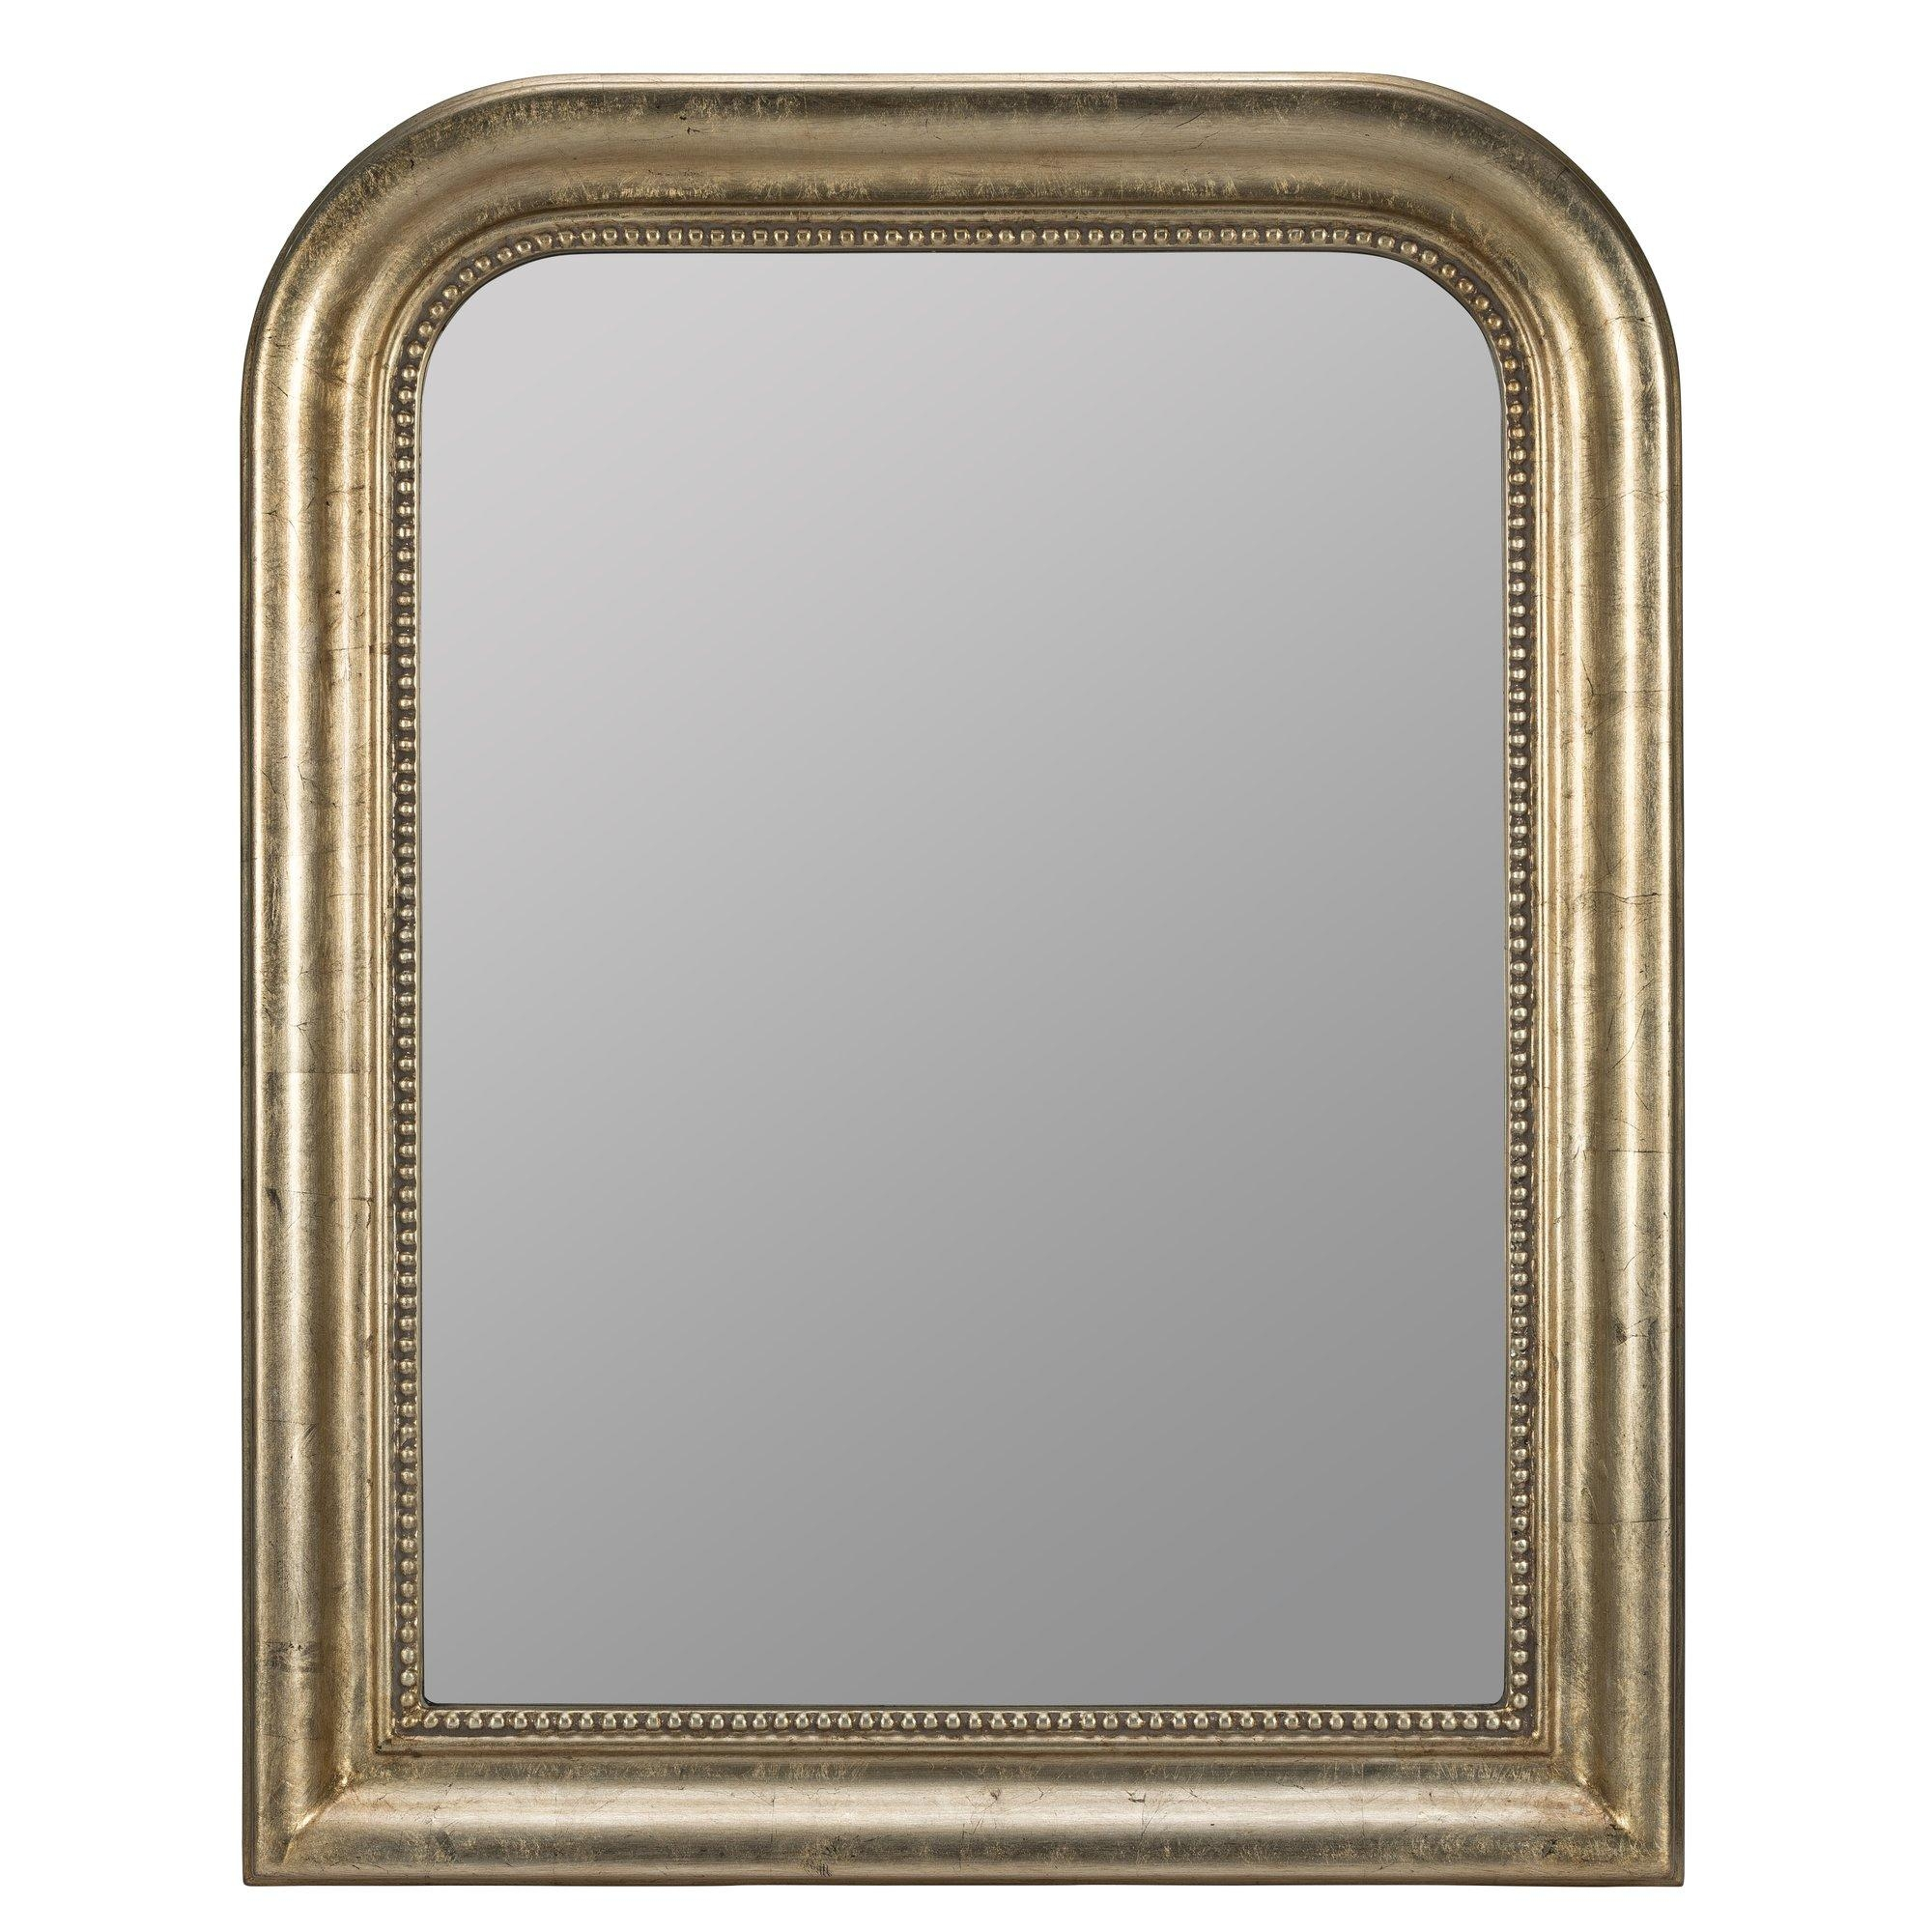 Darby Home Co Antique Champagne Wall Mirror & Reviews | Wayfair With Regard To Champagne Mirror (Image 6 of 20)